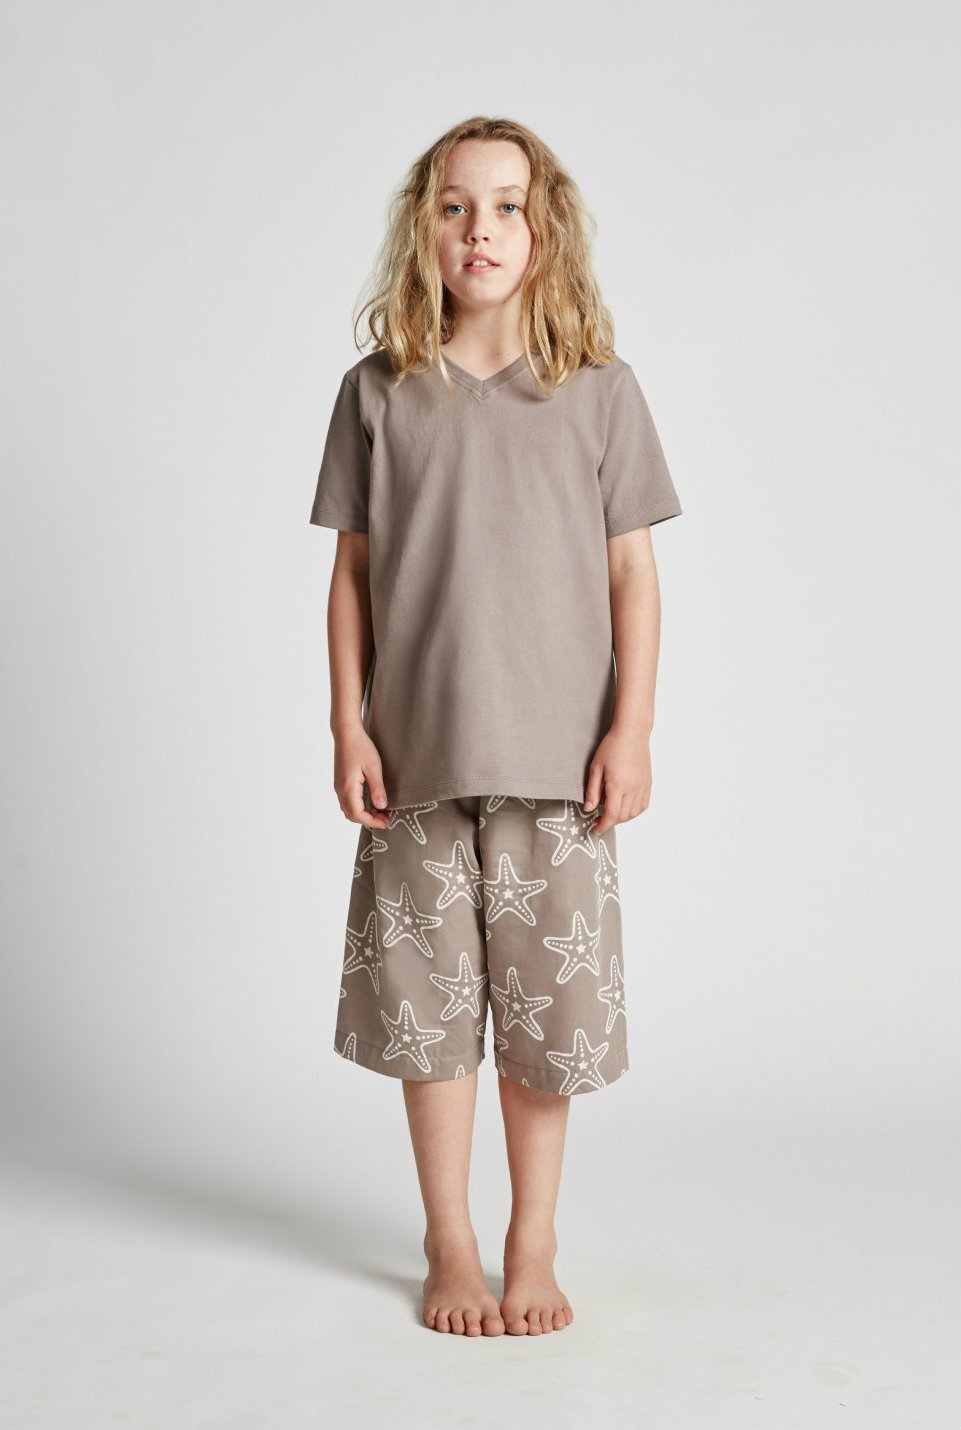 Starfish - Kids Unisex Pyjamas- Tee and Shorts Set